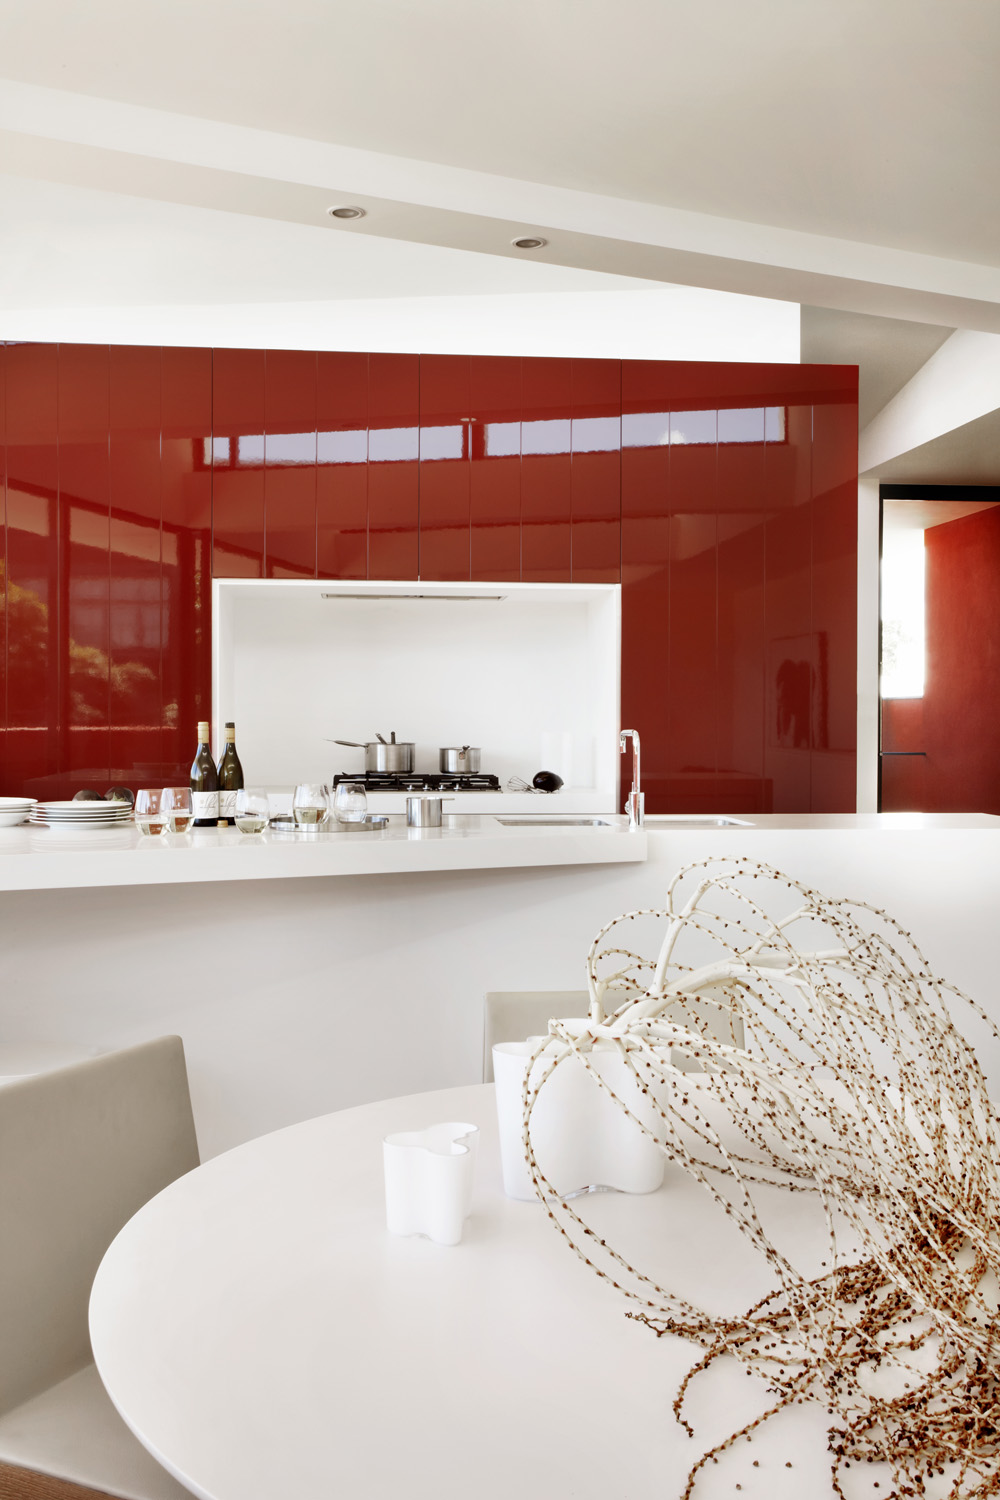 A red splashback is a bold statement that brings heat to the kitchen